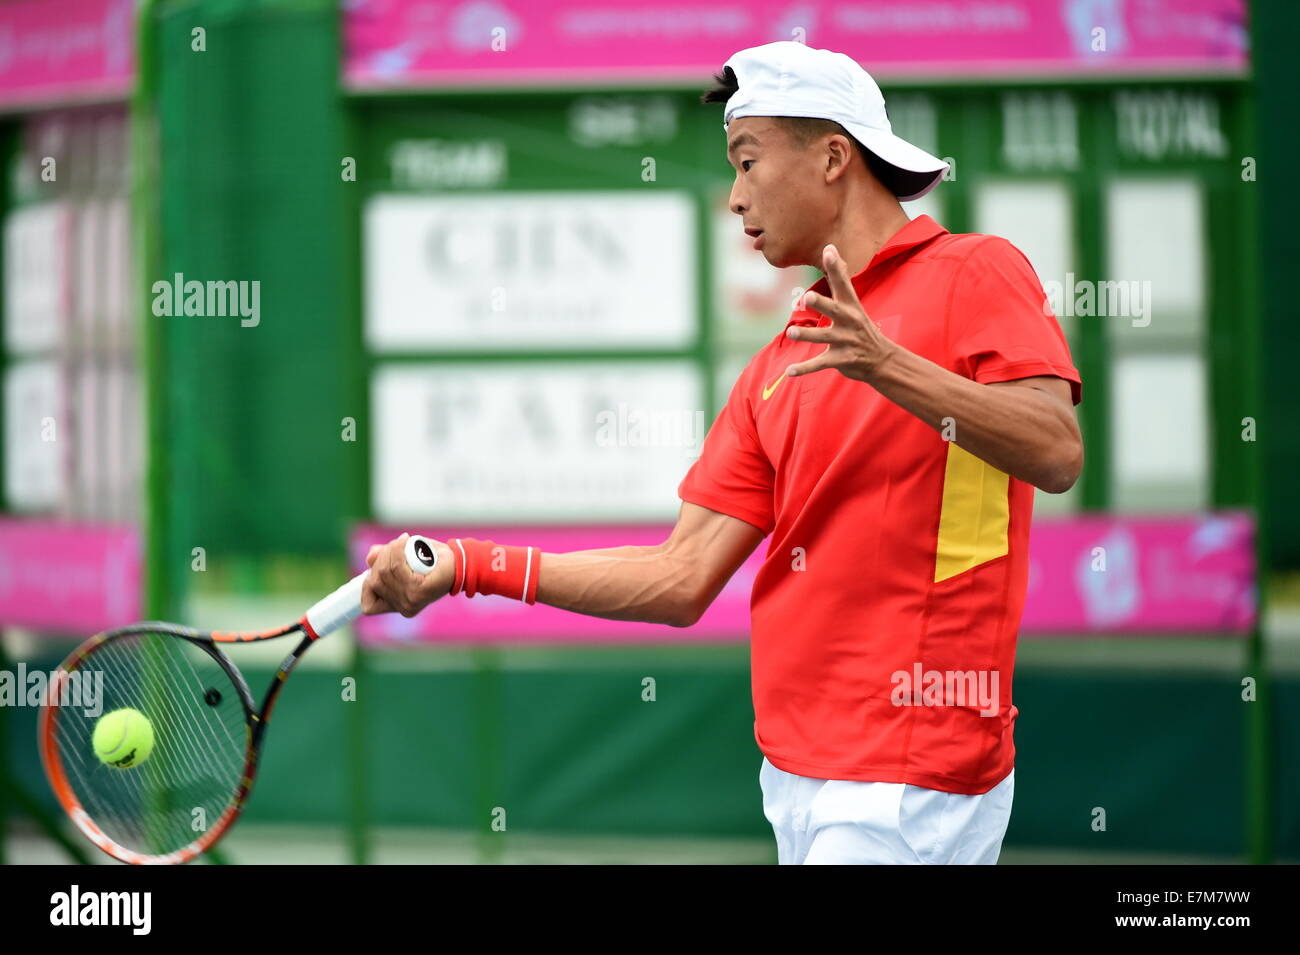 Incheon, South Korea. 21st Sep, 2014. Wu Di of China returns the ball during the men's tennis team second round - Stock Image